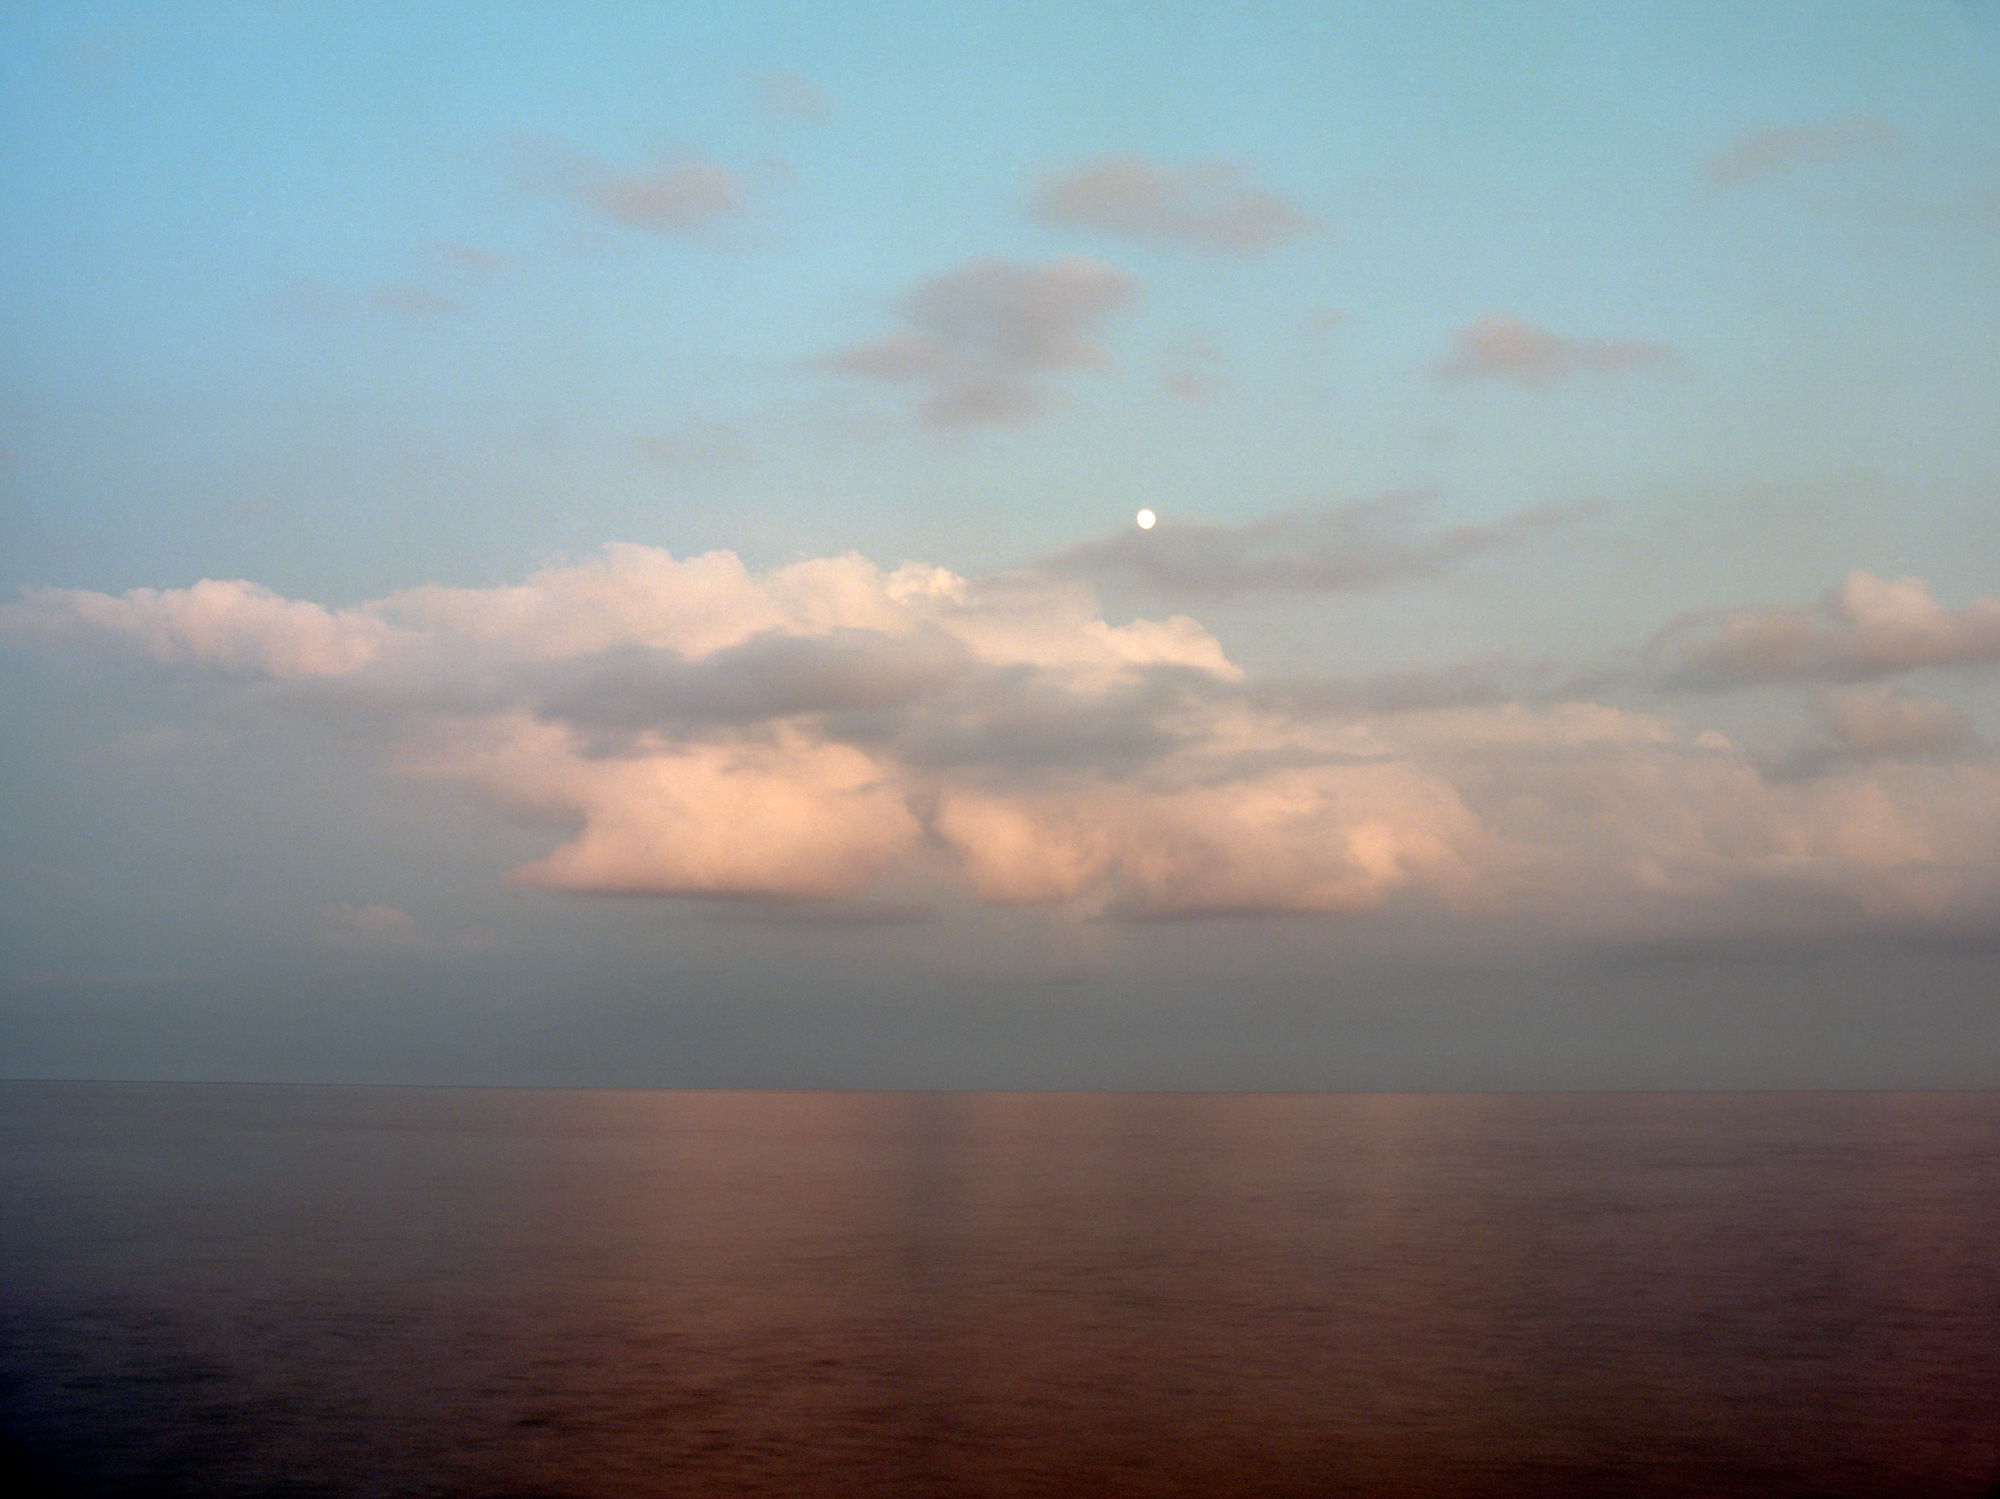 Cloud reflections on water, British South Coast Seas, seascape by Ioannis Koussertari.